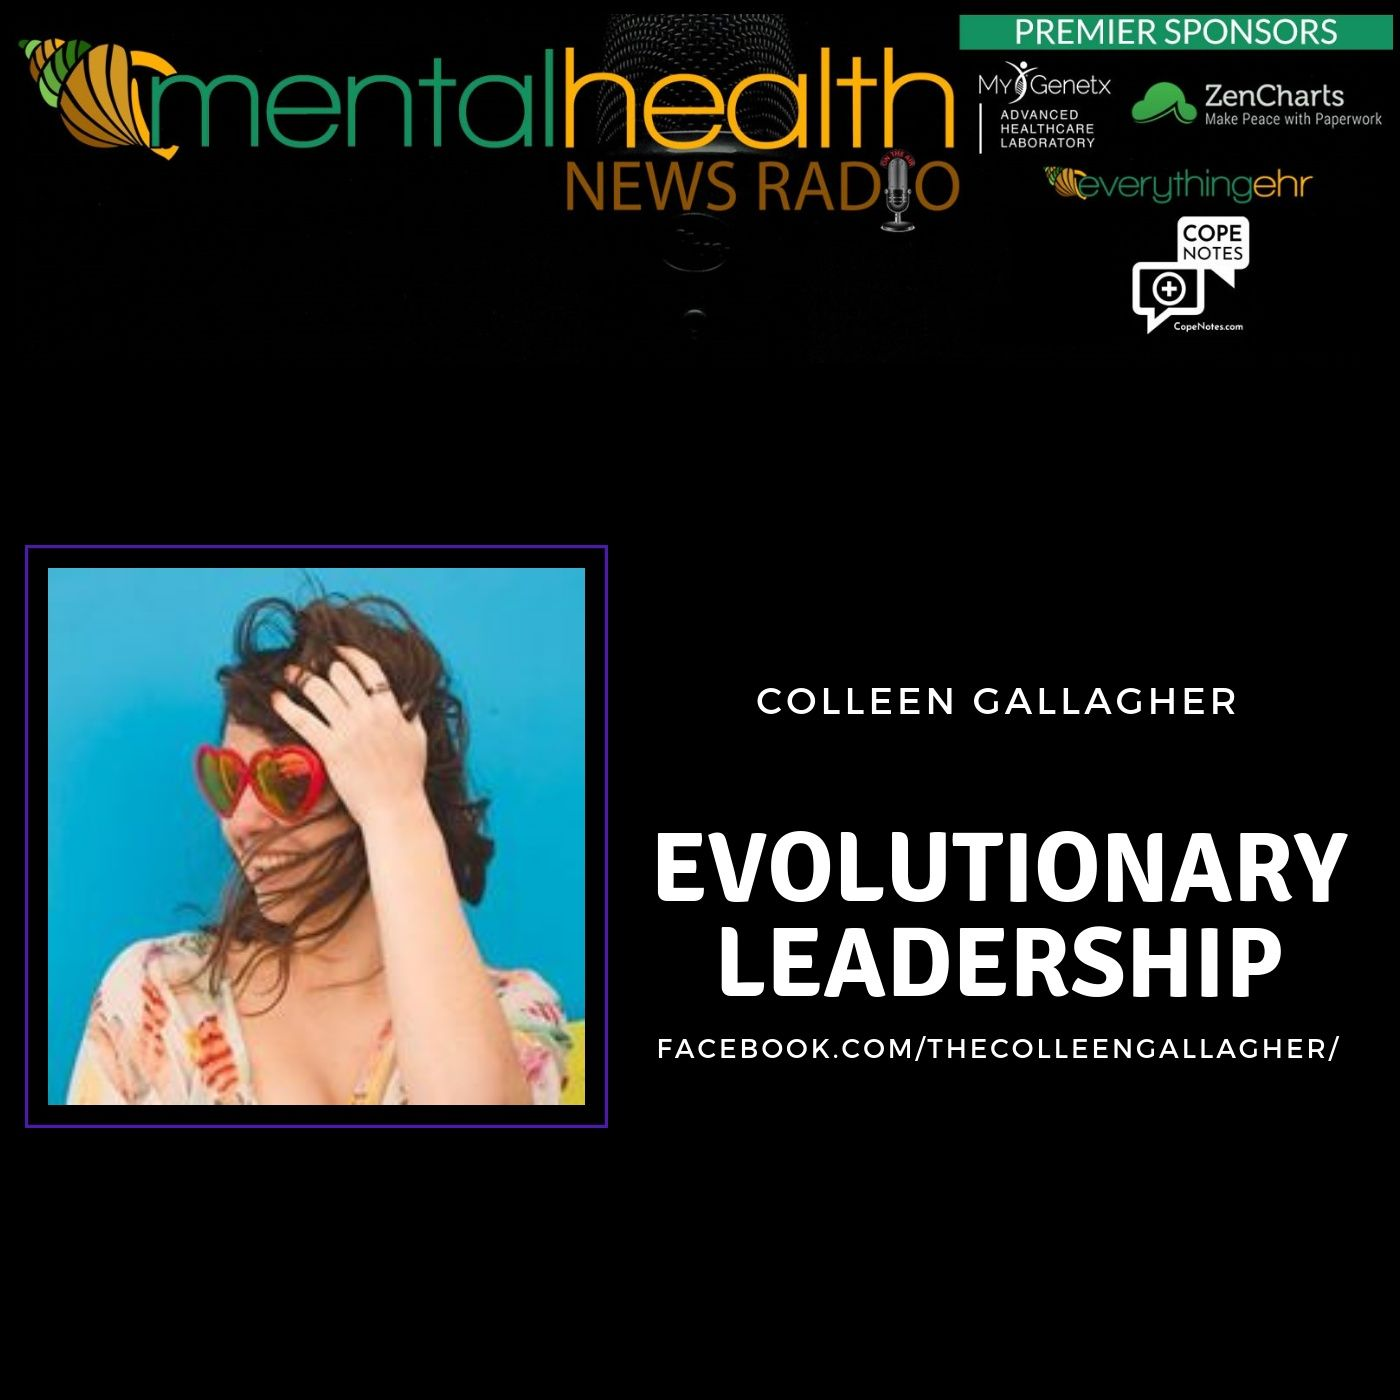 Mental Health News Radio - Evolutionary Leadership with Colleen Gallagher